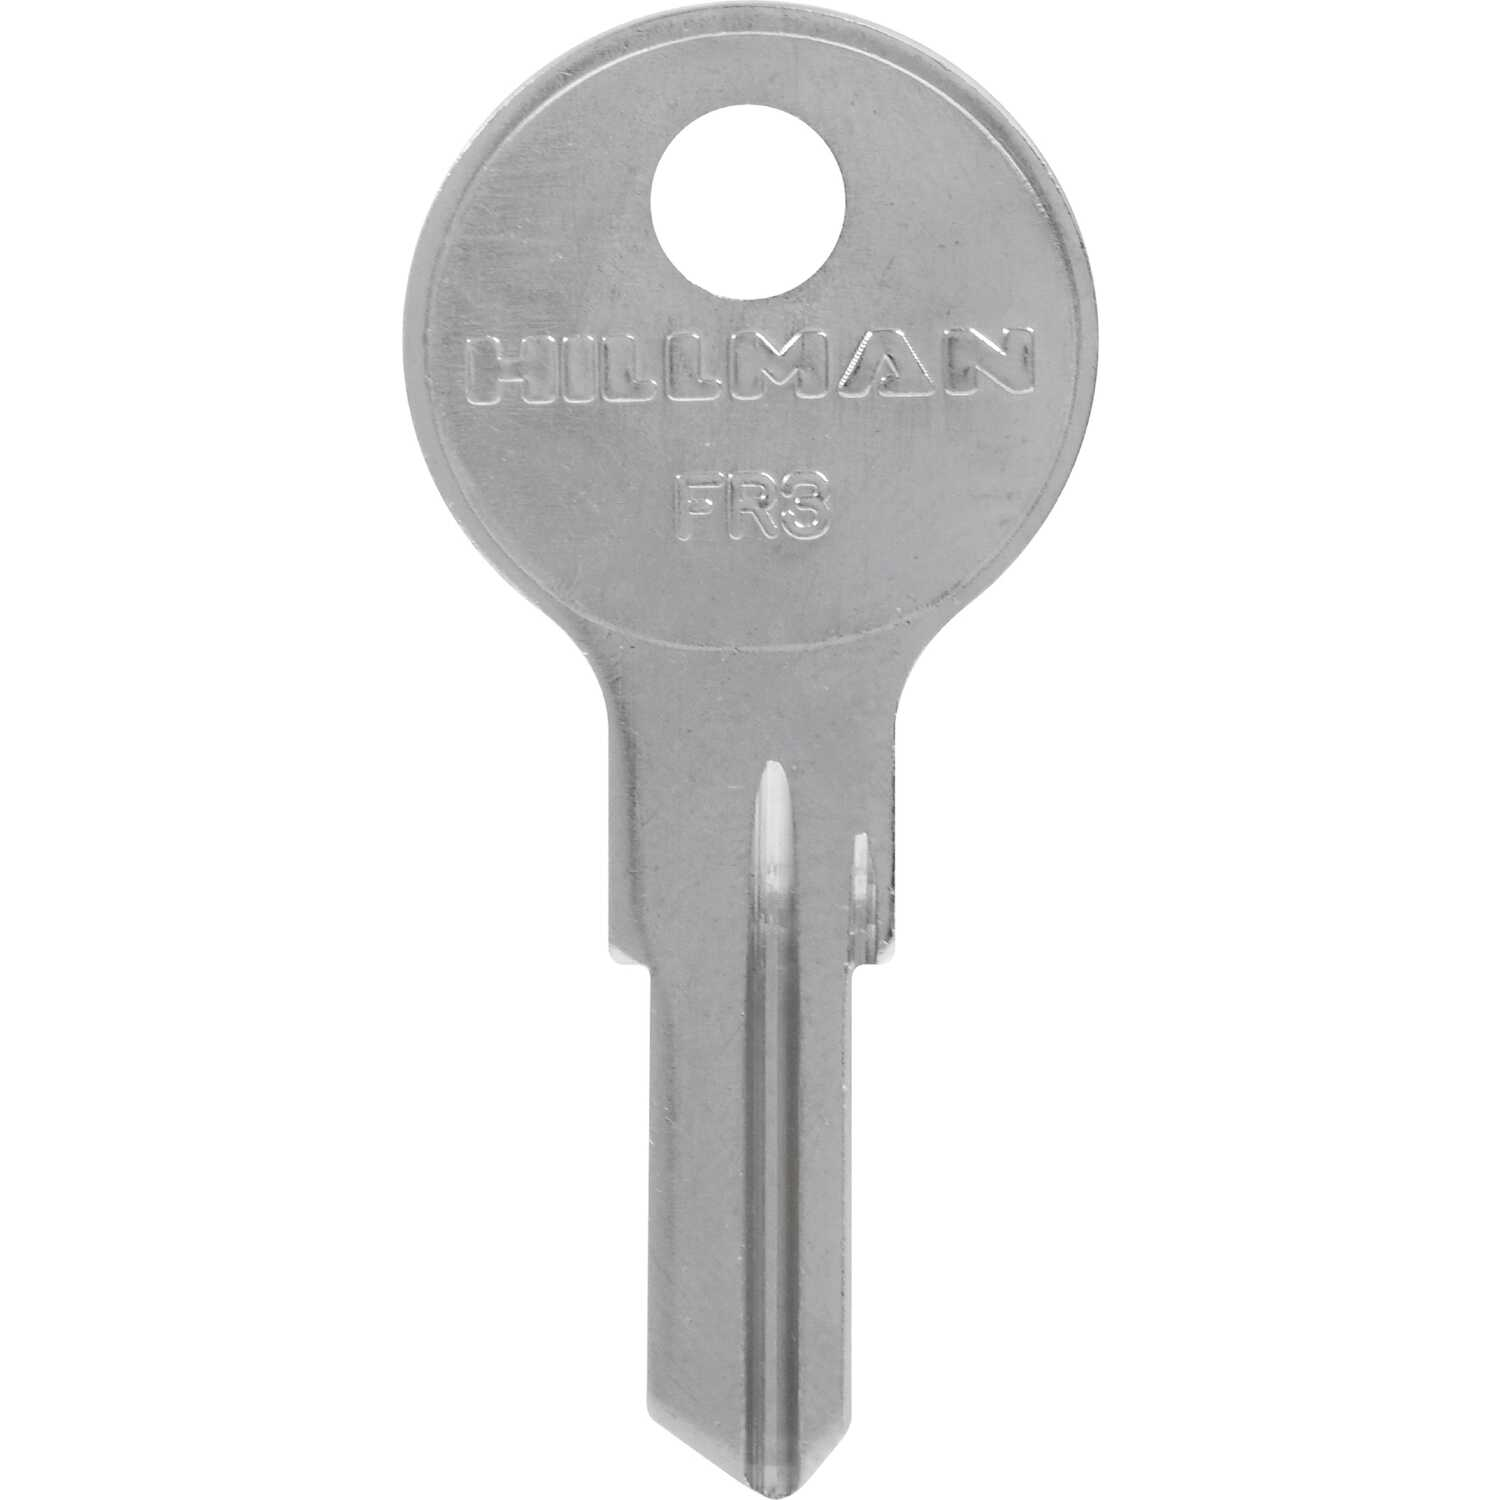 Hillman  KeyKrafter  House/Office  Universal Key Blank  2014  FR3  Single sided